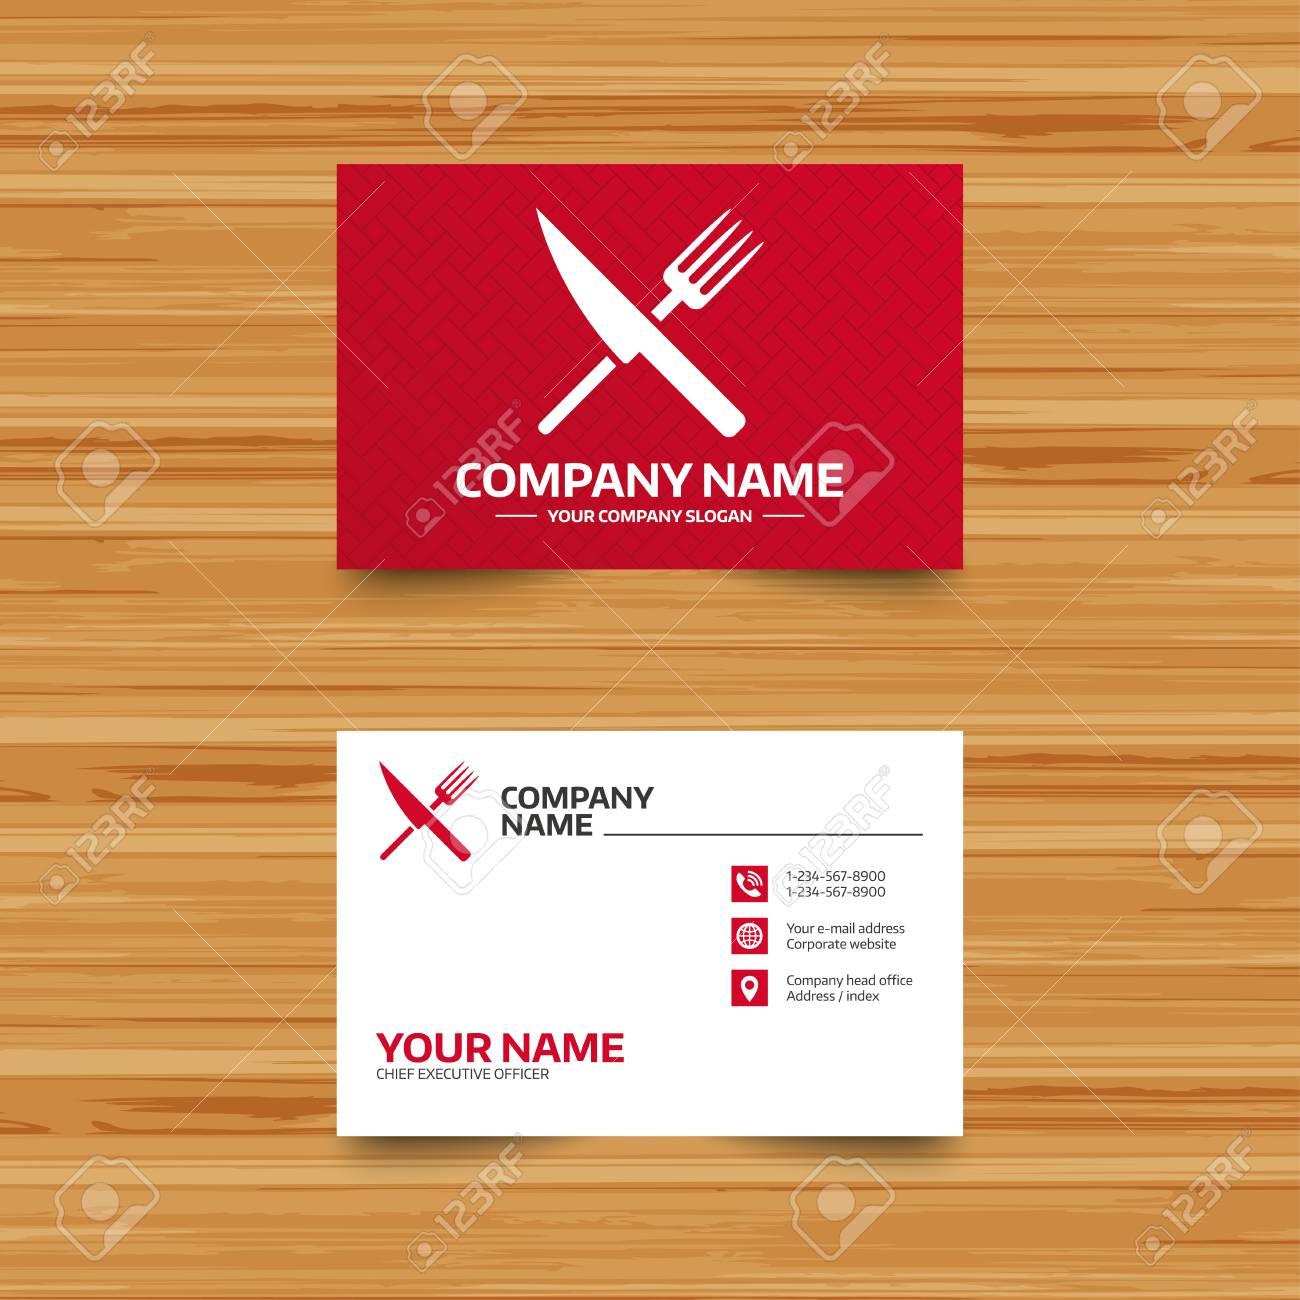 Business card template food sign icon cutlery symbol knife business card template food sign icon cutlery symbol knife and fork phone colourmoves